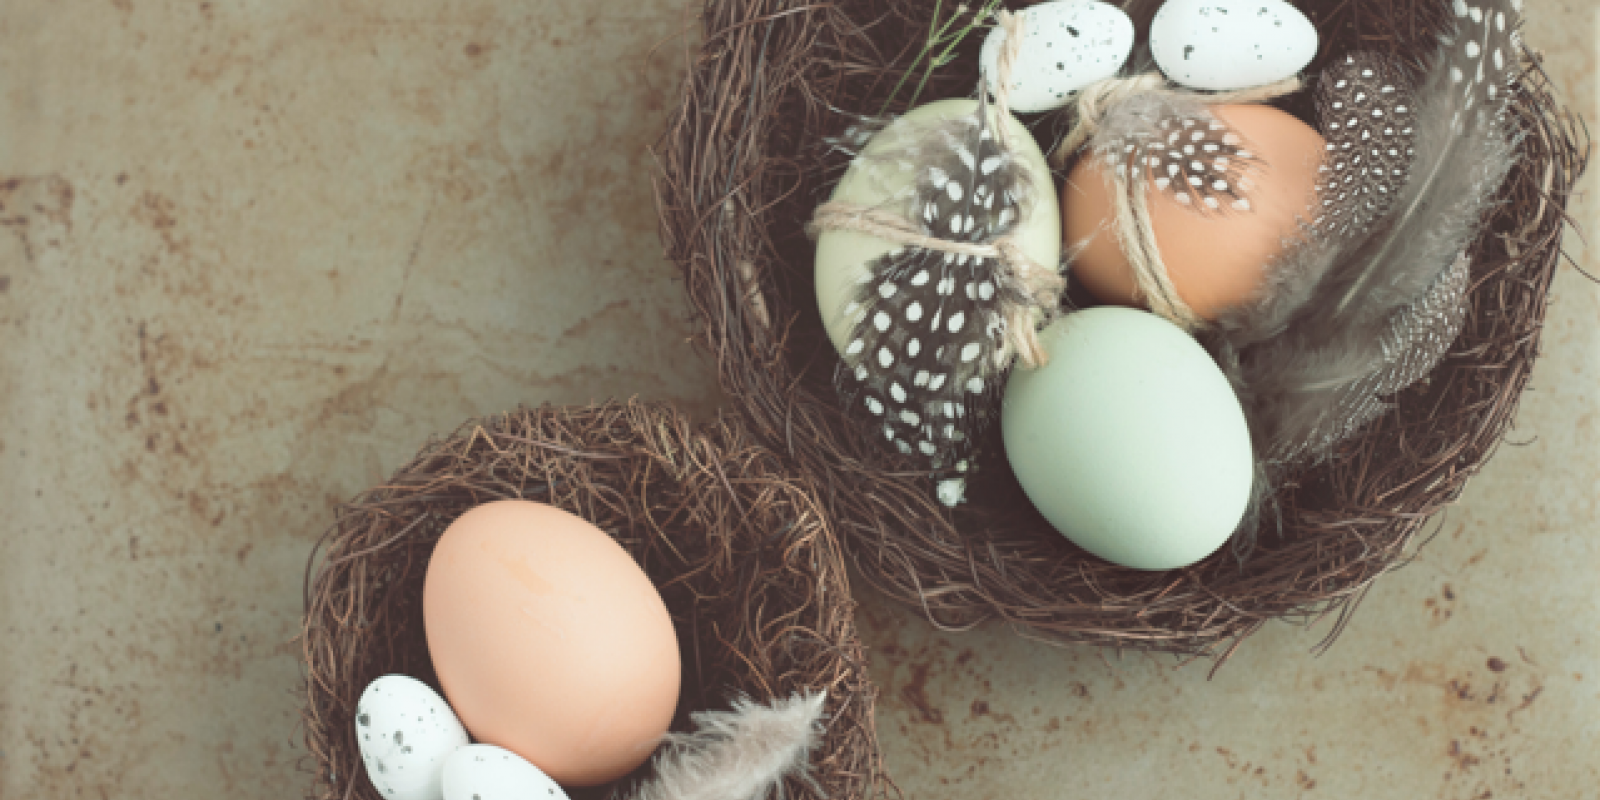 4 Ways To Use Eggs for Beauty this Easter